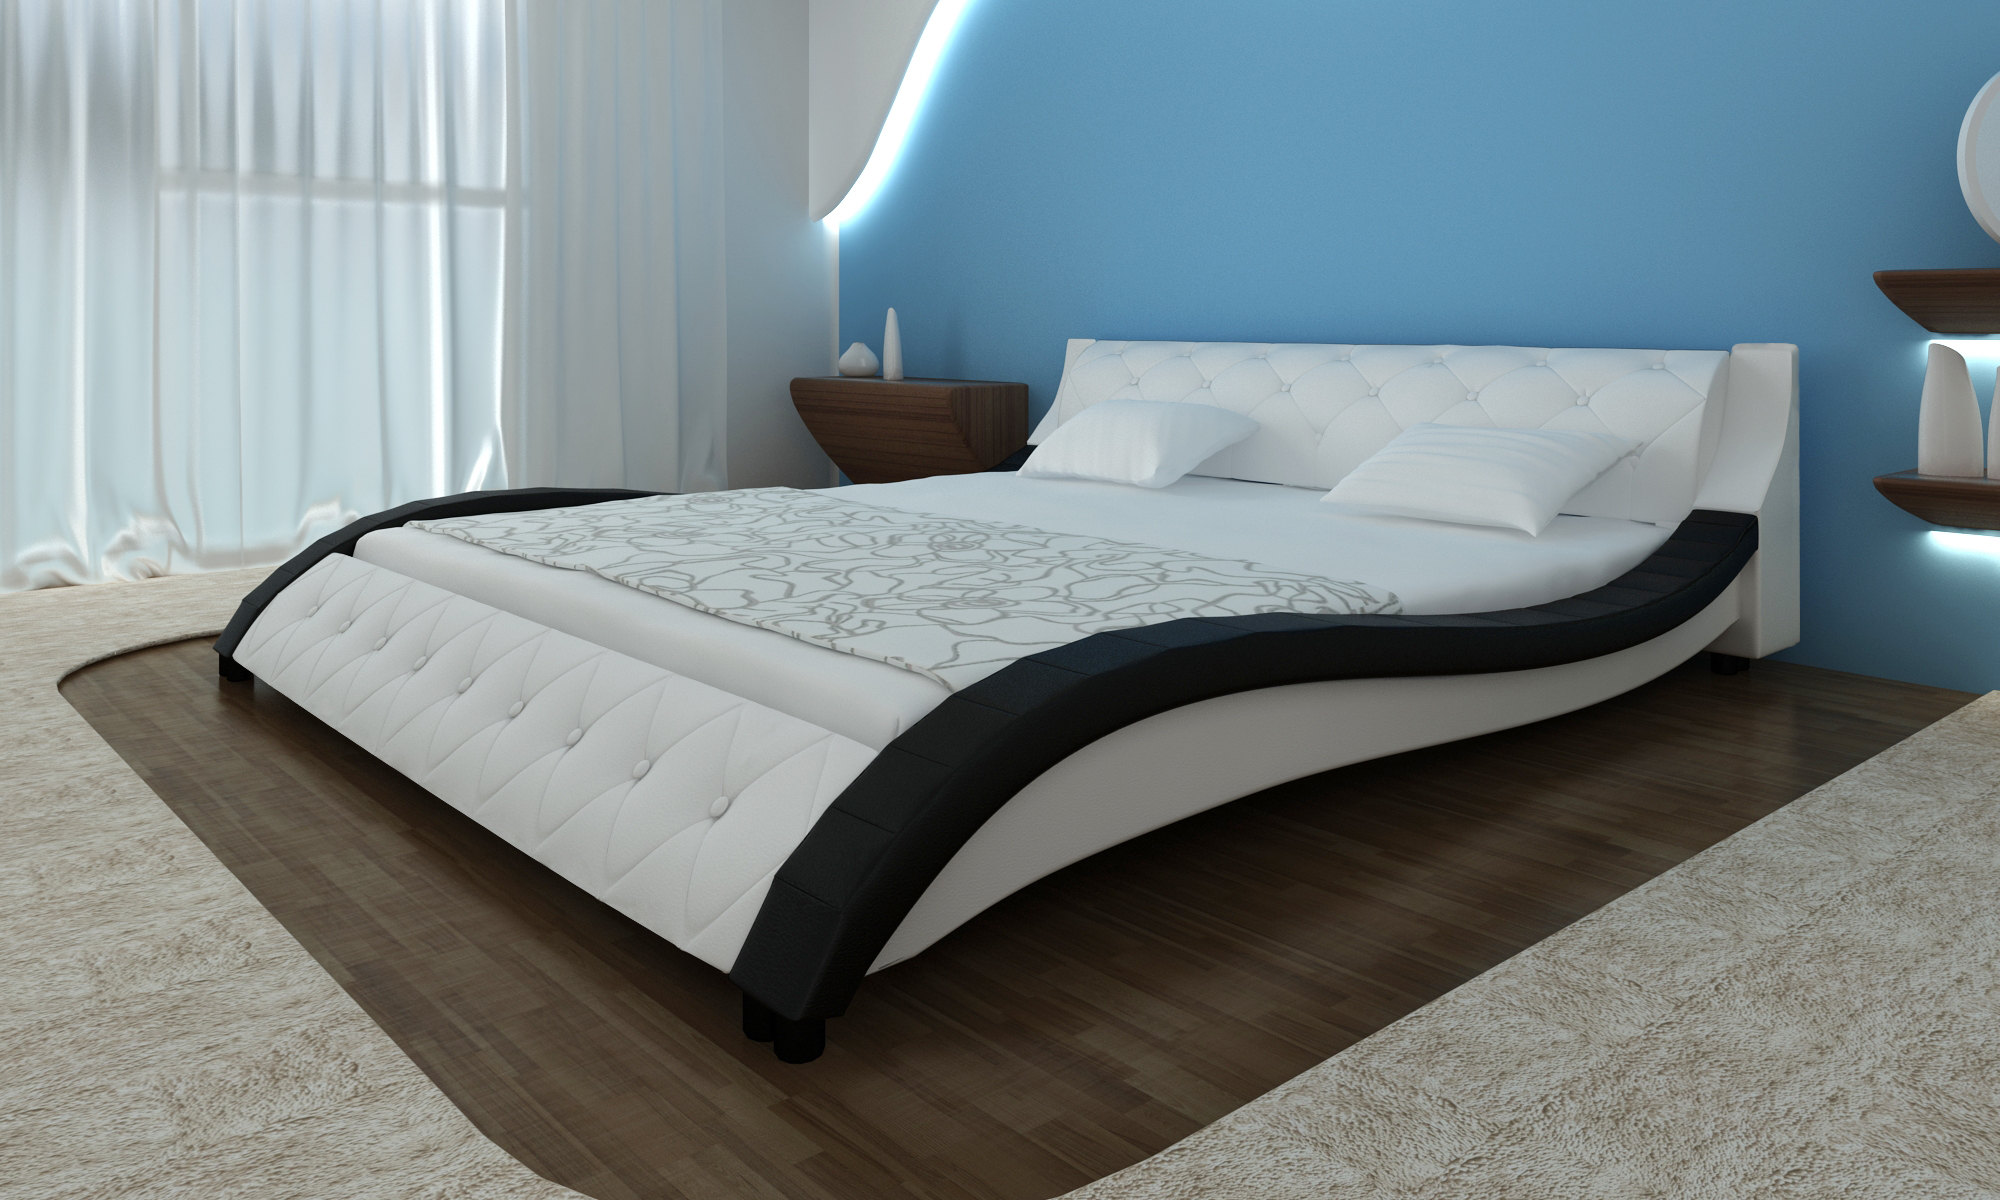 lit design en cuir 140 x 200 cm noir matelas. Black Bedroom Furniture Sets. Home Design Ideas